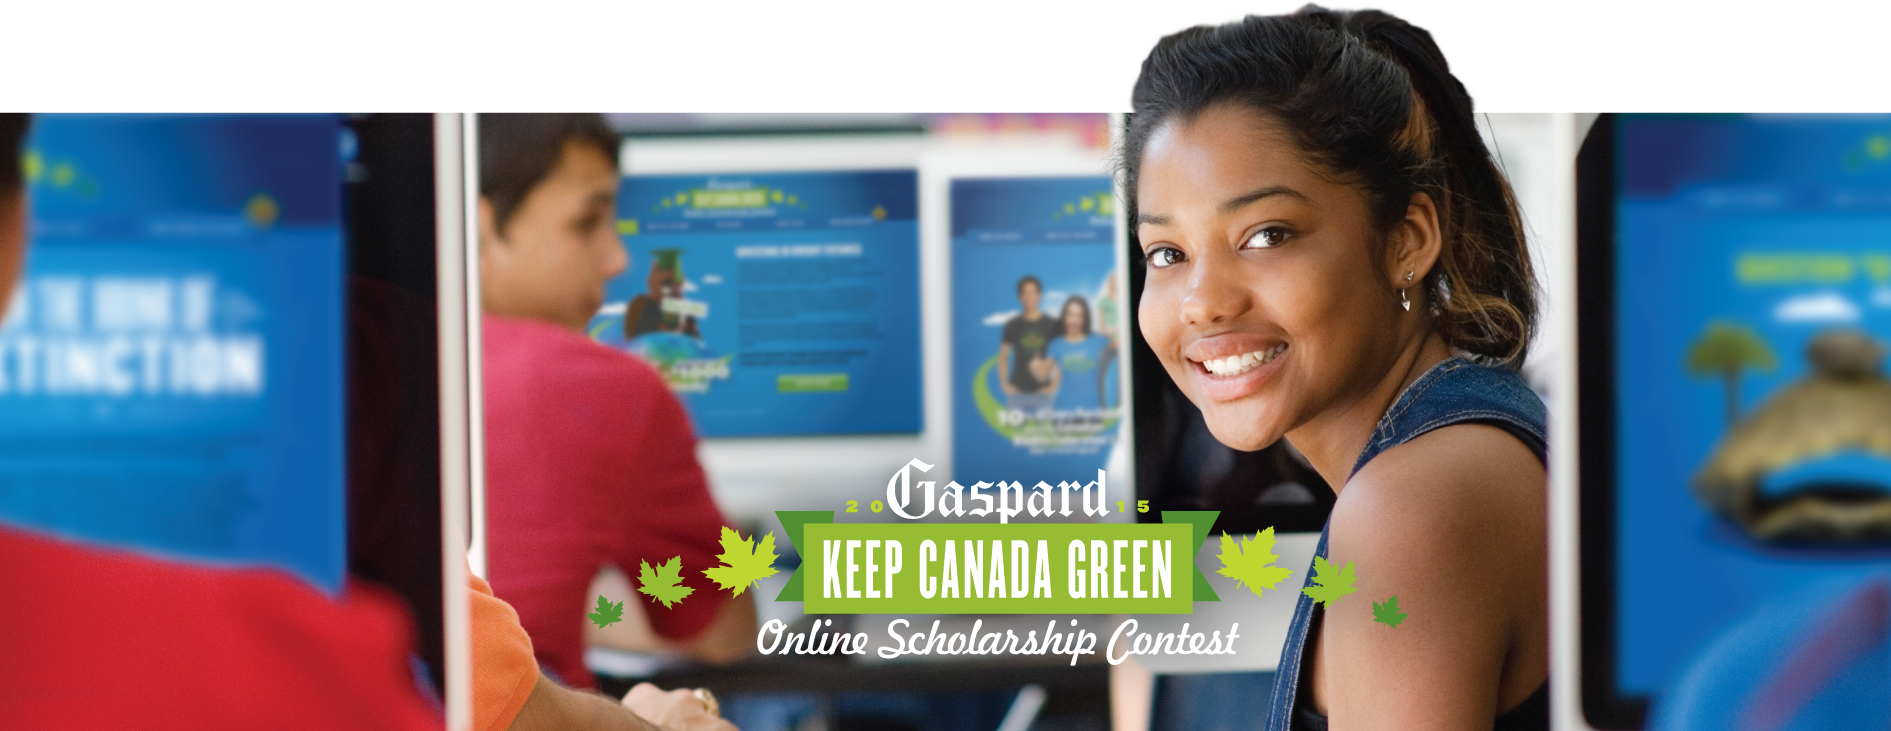 Gaspard - Keep Canada Green Contest